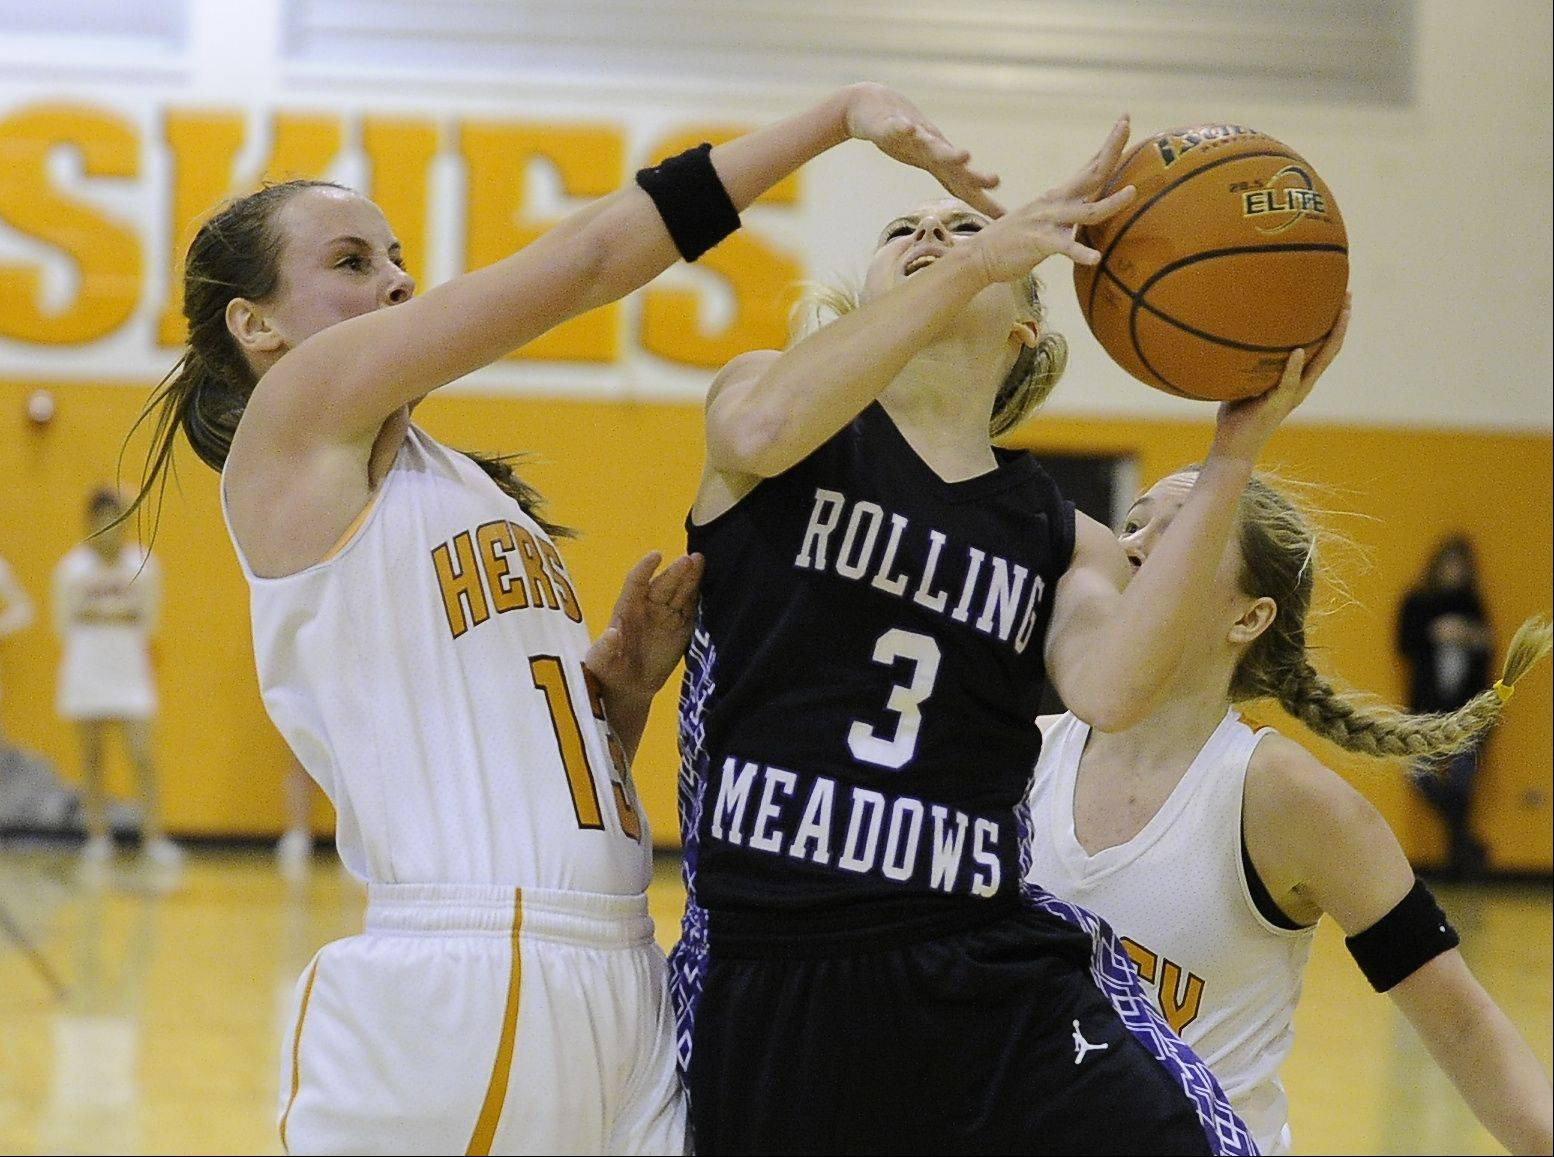 Images from Rolling Meadows vs Hersey girls basketball on Friday, January 17th.